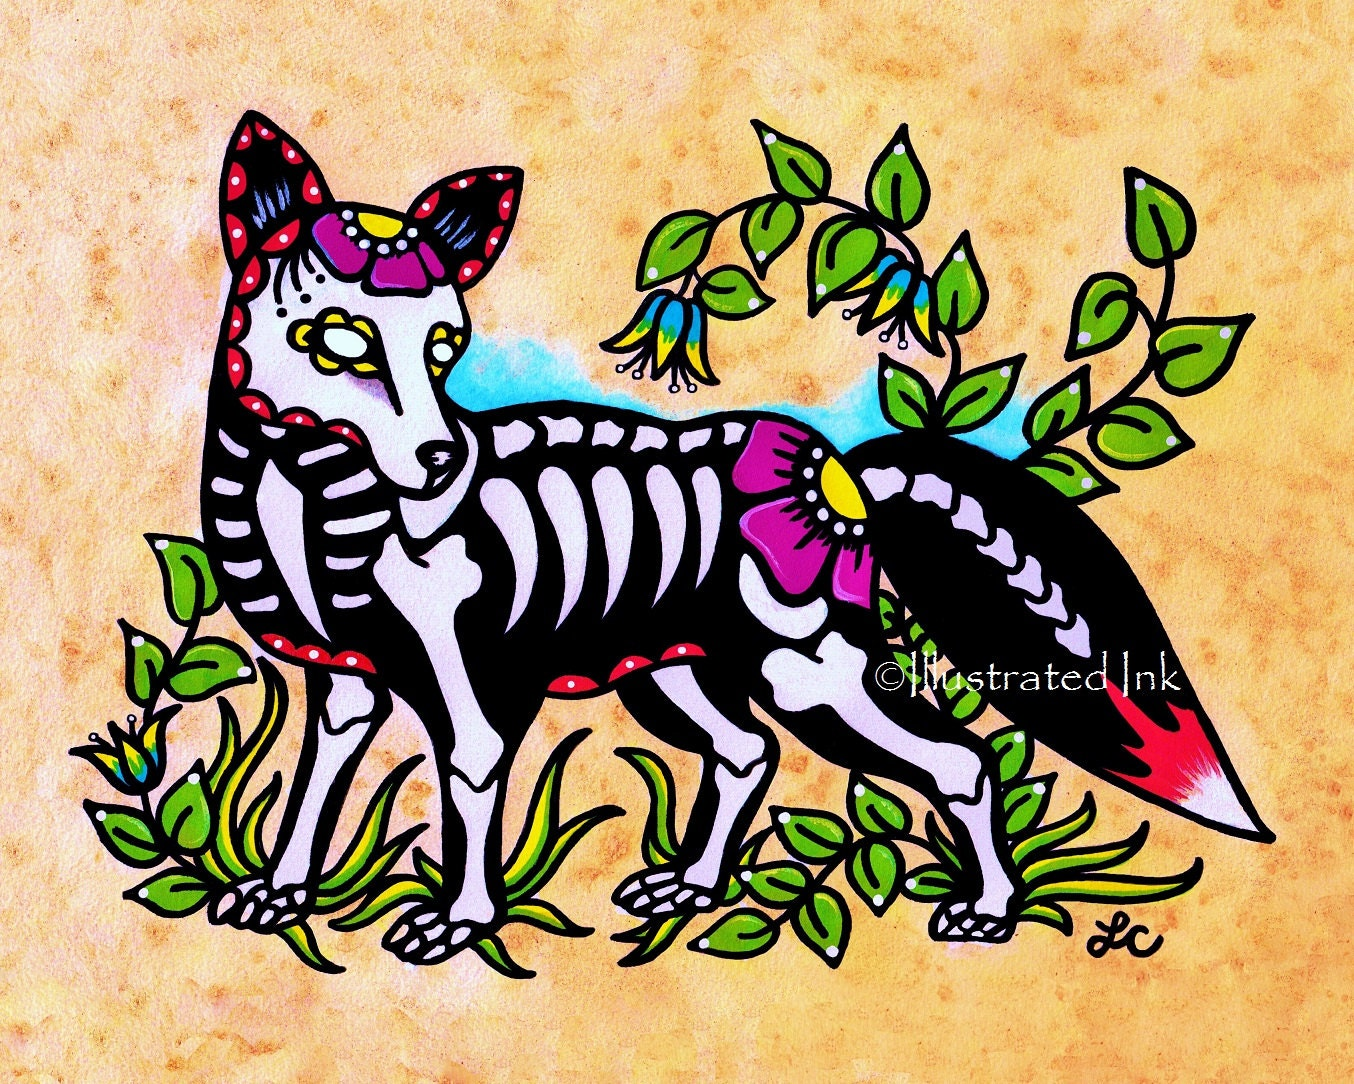 Day of the dead fox dia de los muertos art print 5 x 7 8 x 10 for Old school day of the dead tattoo